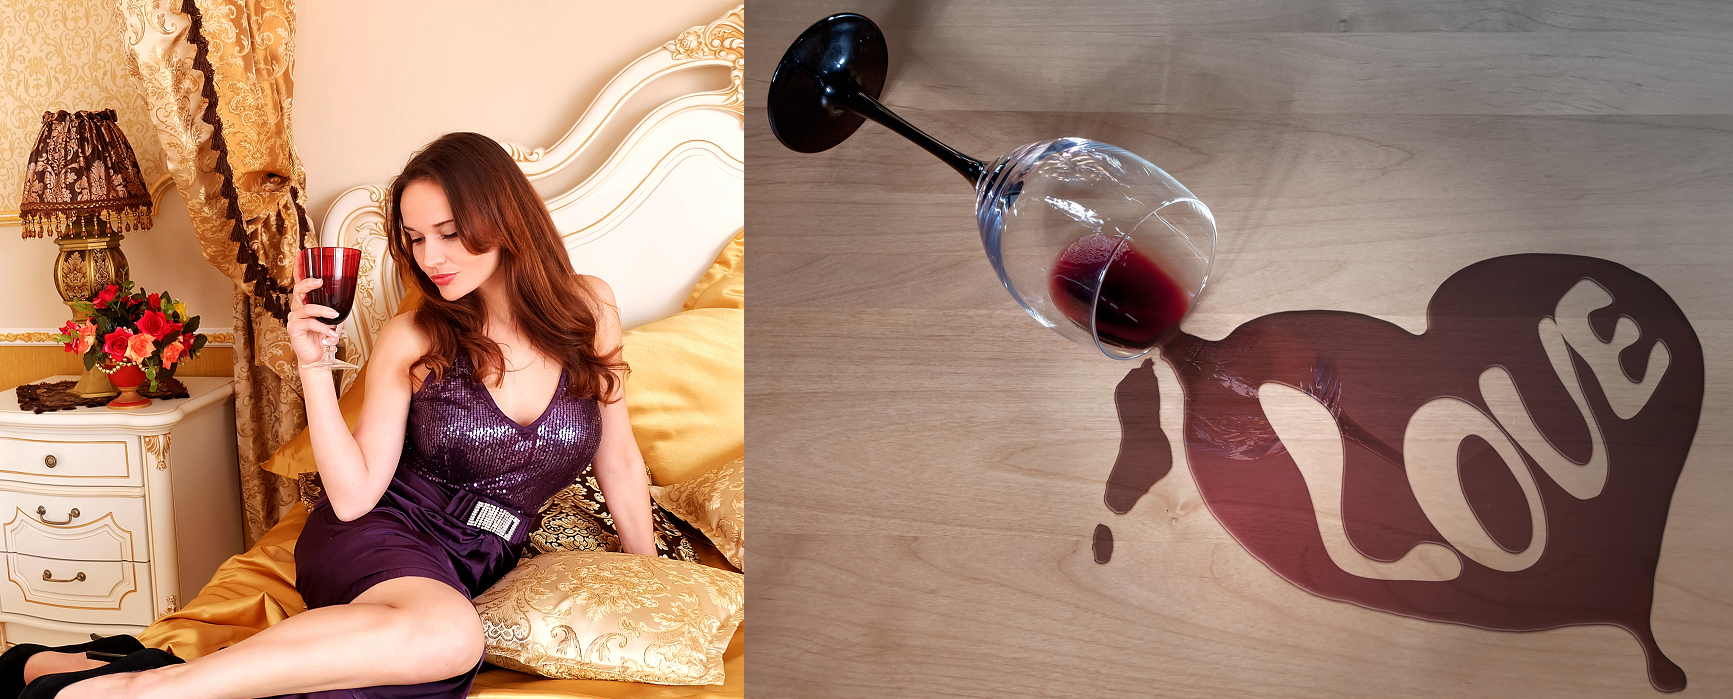 Aphrodisiac - woman with glass / overturned red wine gals with text